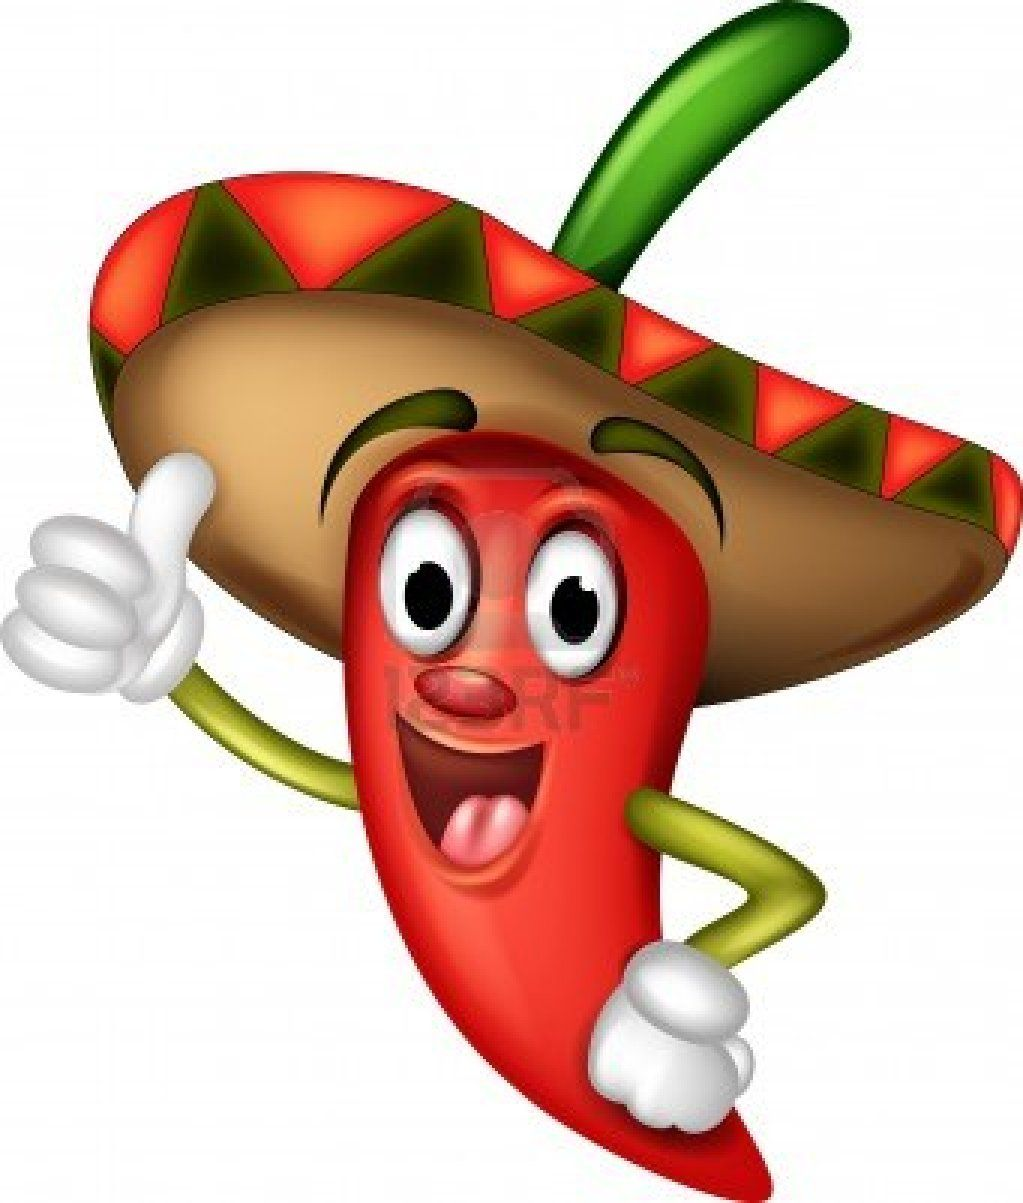 chili pepper cartoon thumbs up stock photo chile mexicano mexican party mexican night  [ 1023 x 1203 Pixel ]